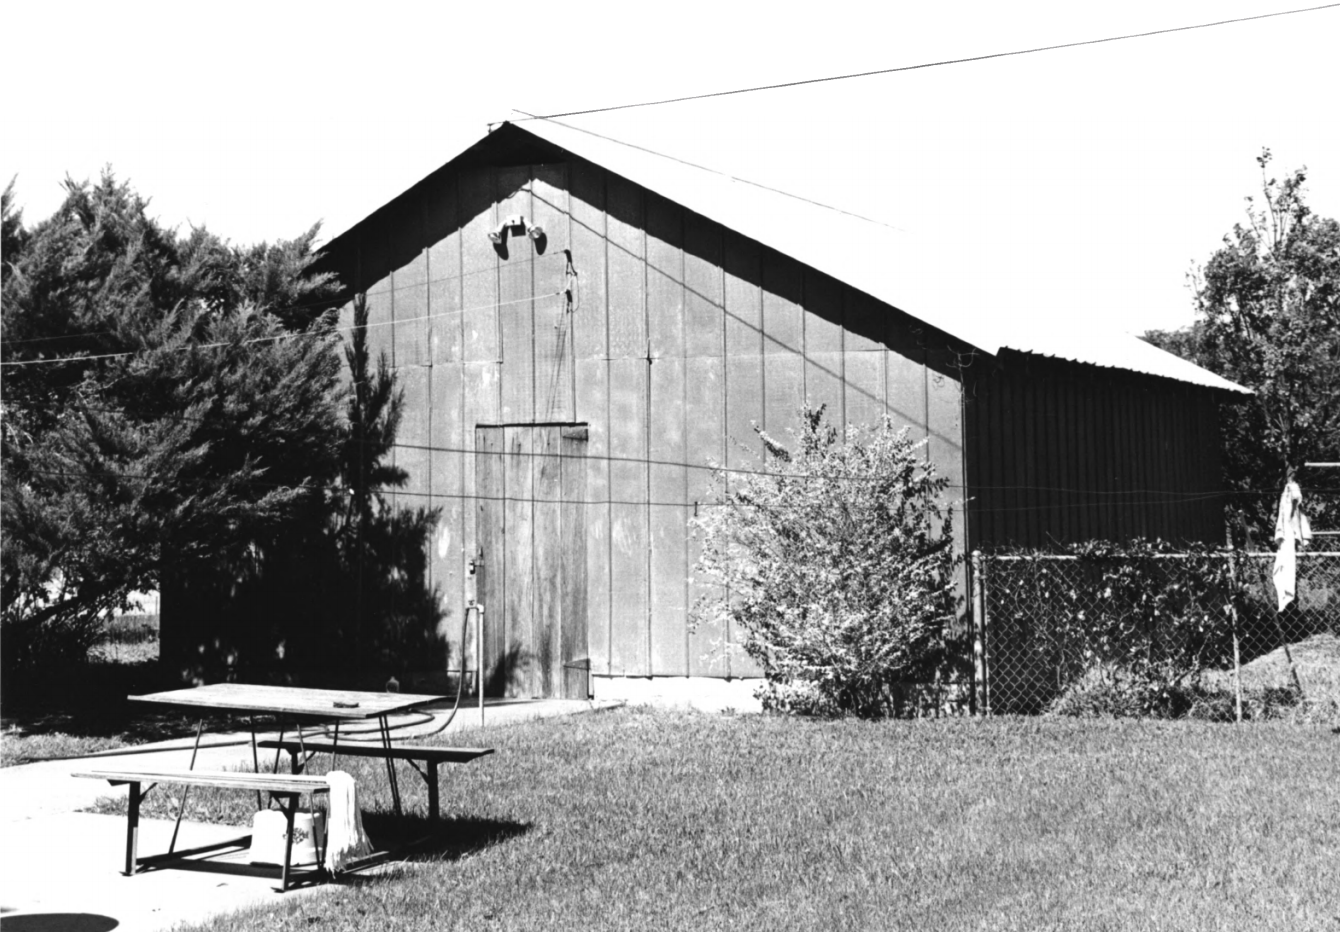 Photo of historic garage from national register of historic places, taken in 1990.